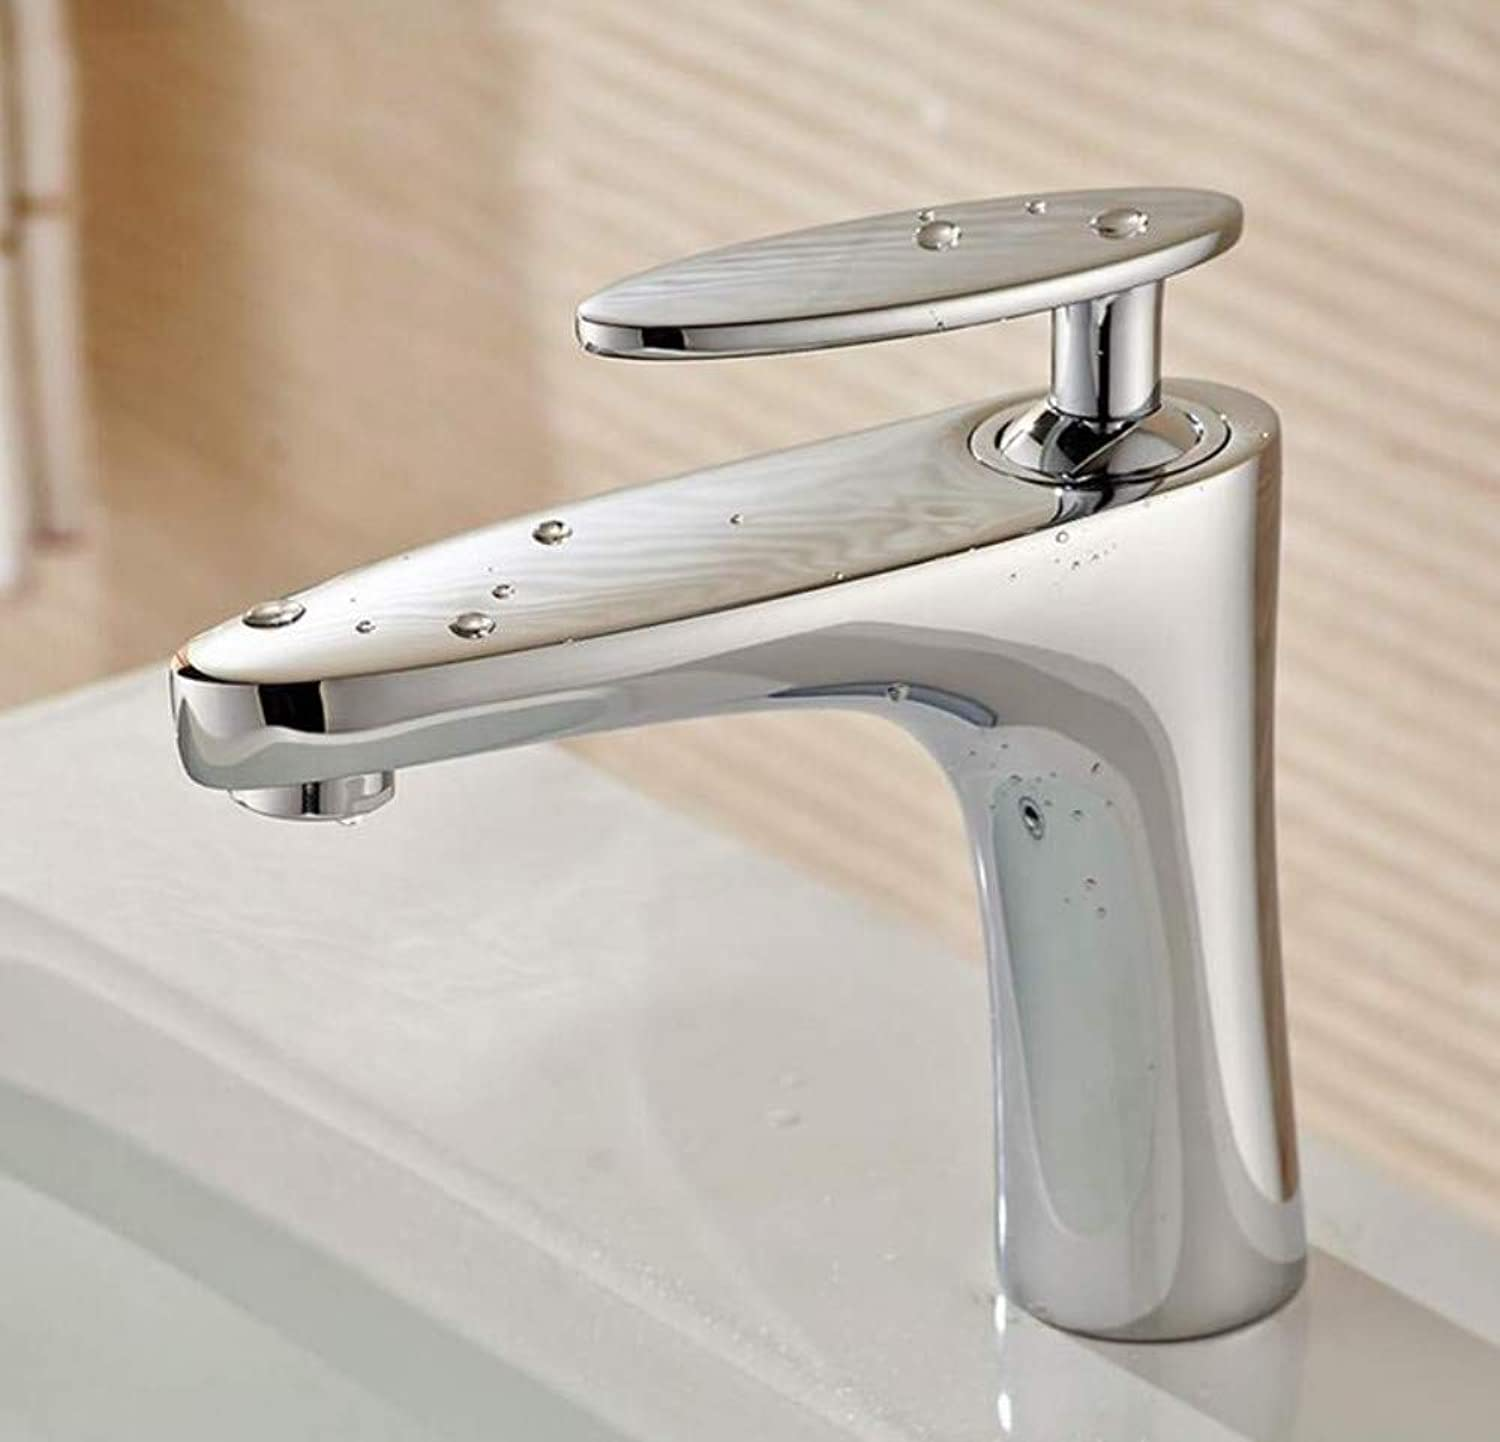 Brass Hot and Cold Chrome Plating Brand Bathroom Hot and Cold Mixer Tap Solid Single Hand Brass Basin Faucet Chrome Faucet